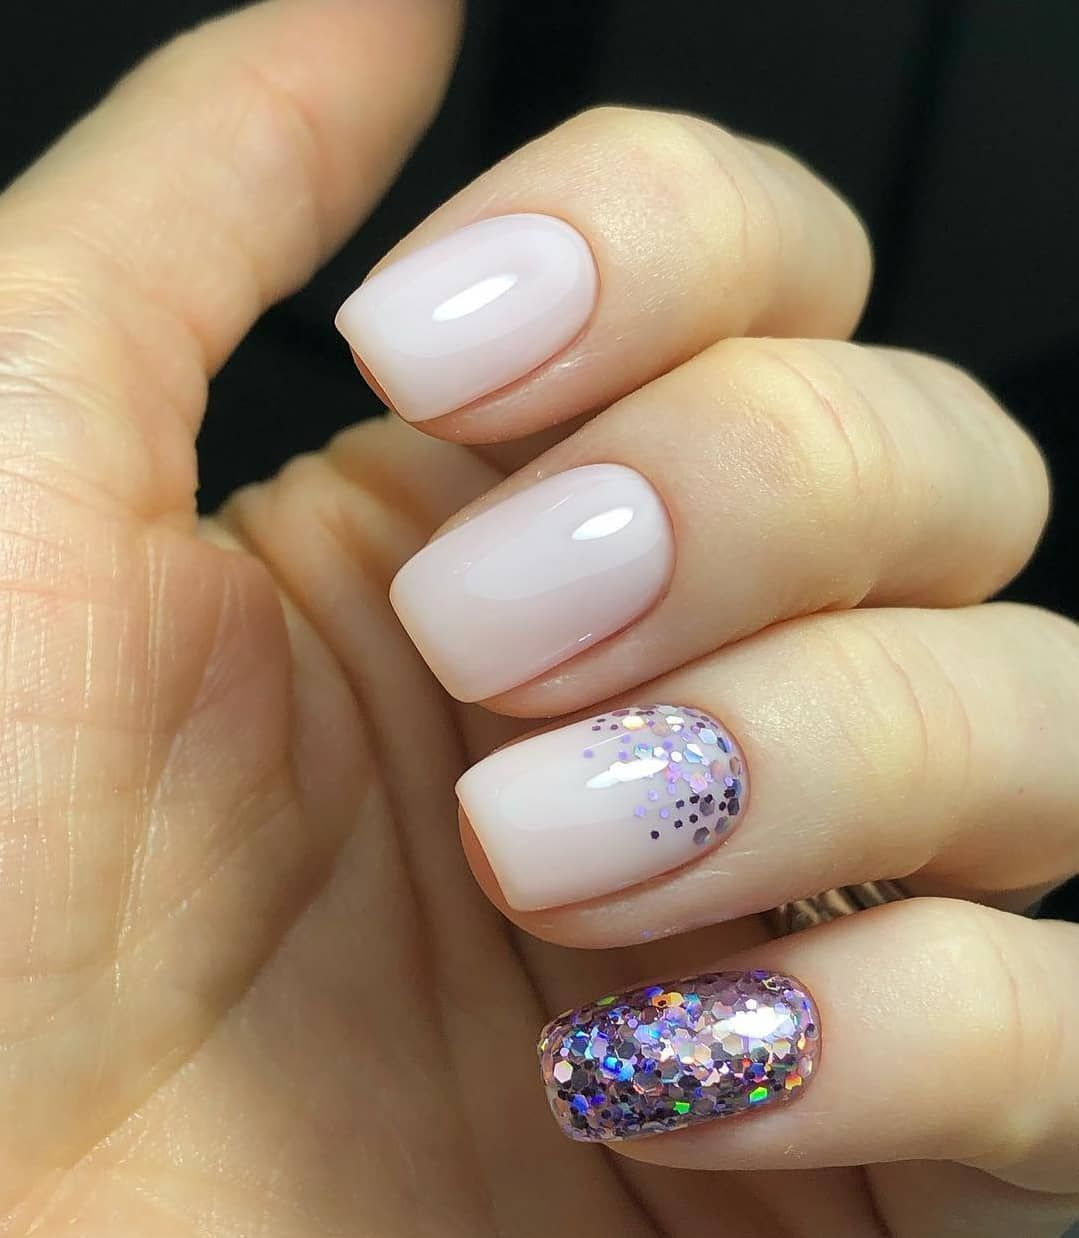 100 Spring Light Color Square Acrylic Nails Designs Square Acrylic Nails Spring Nails White Nails Pink Nail Square Acrylic Nails Square Nails Nail Designs